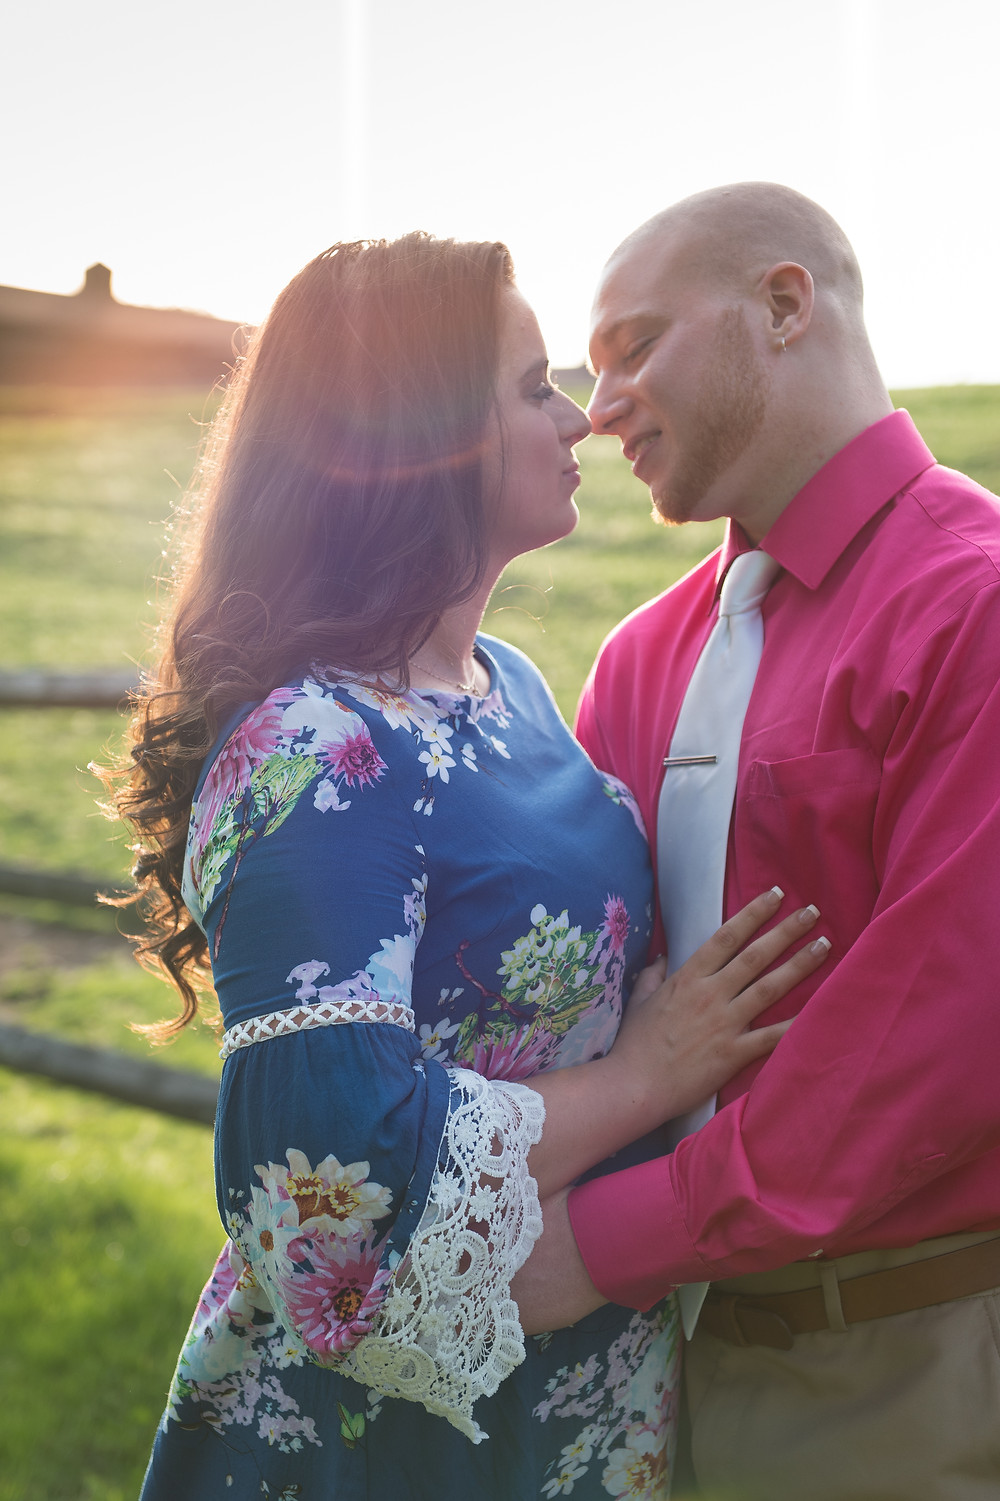 Couple leaning in for a kiss in front of a horse pasture at Oglebay. Woman is wearing a blue floral dress and man is wearing a pink dress shirt and silver tie.